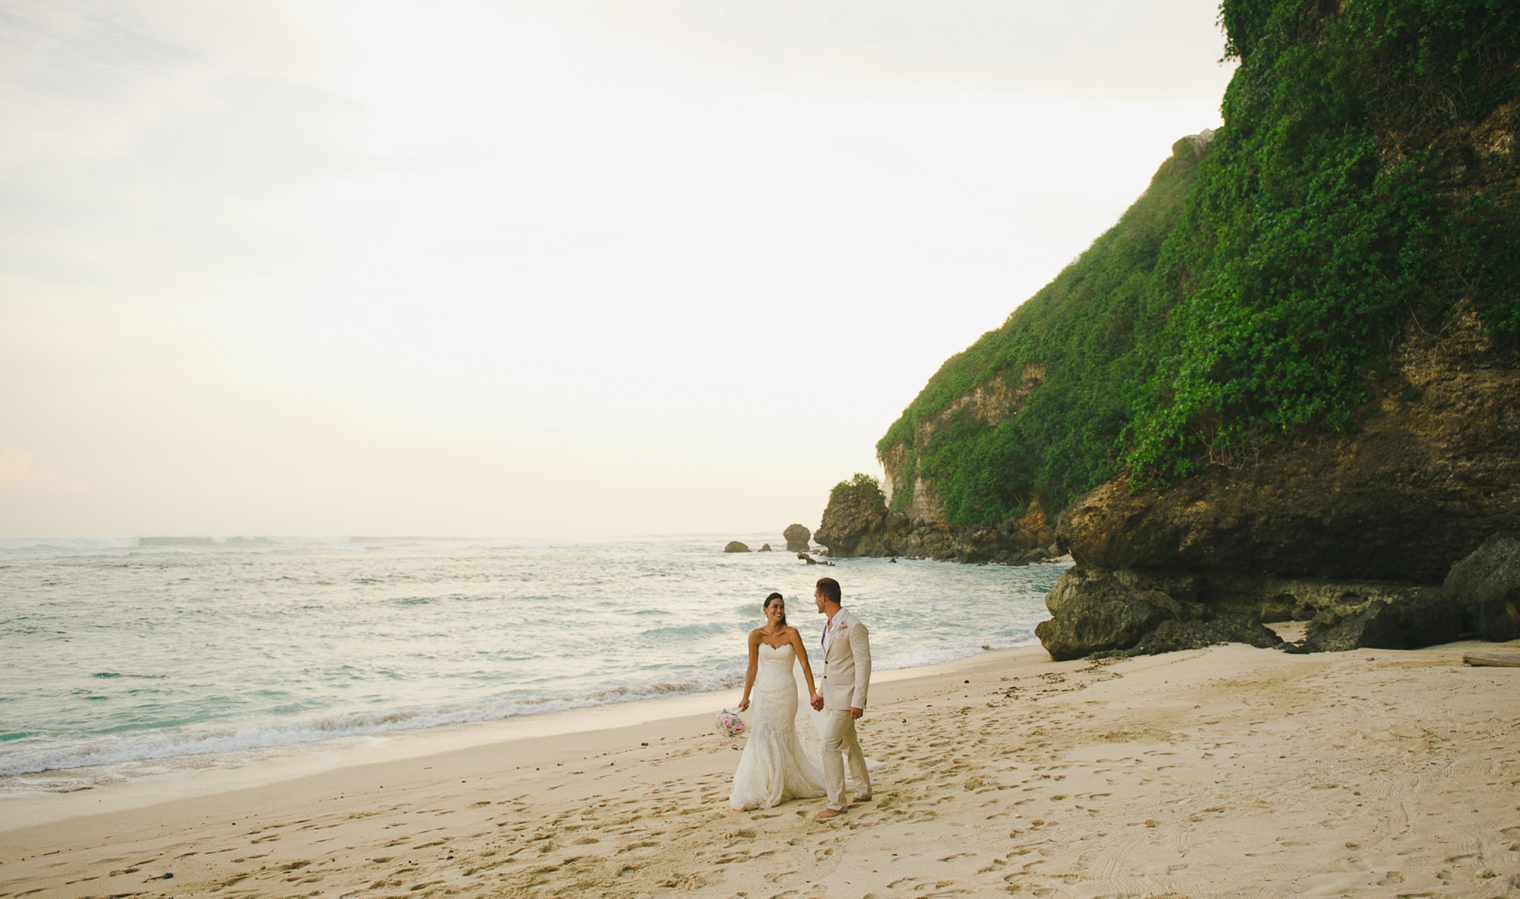 Bali weddings